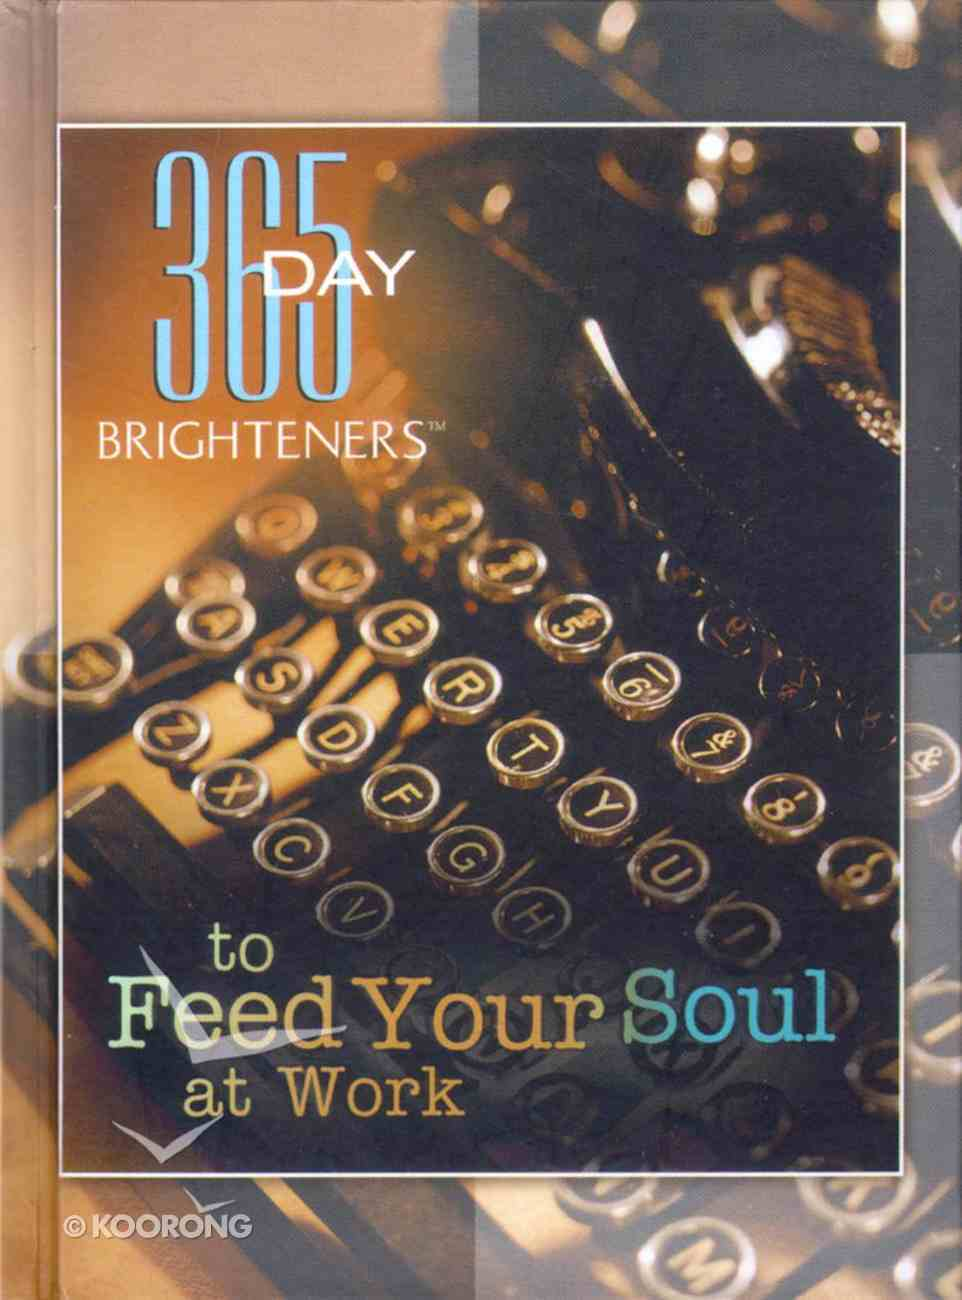 To Feed Your Soul At Work (365 Day Brighteners Series) Hardback